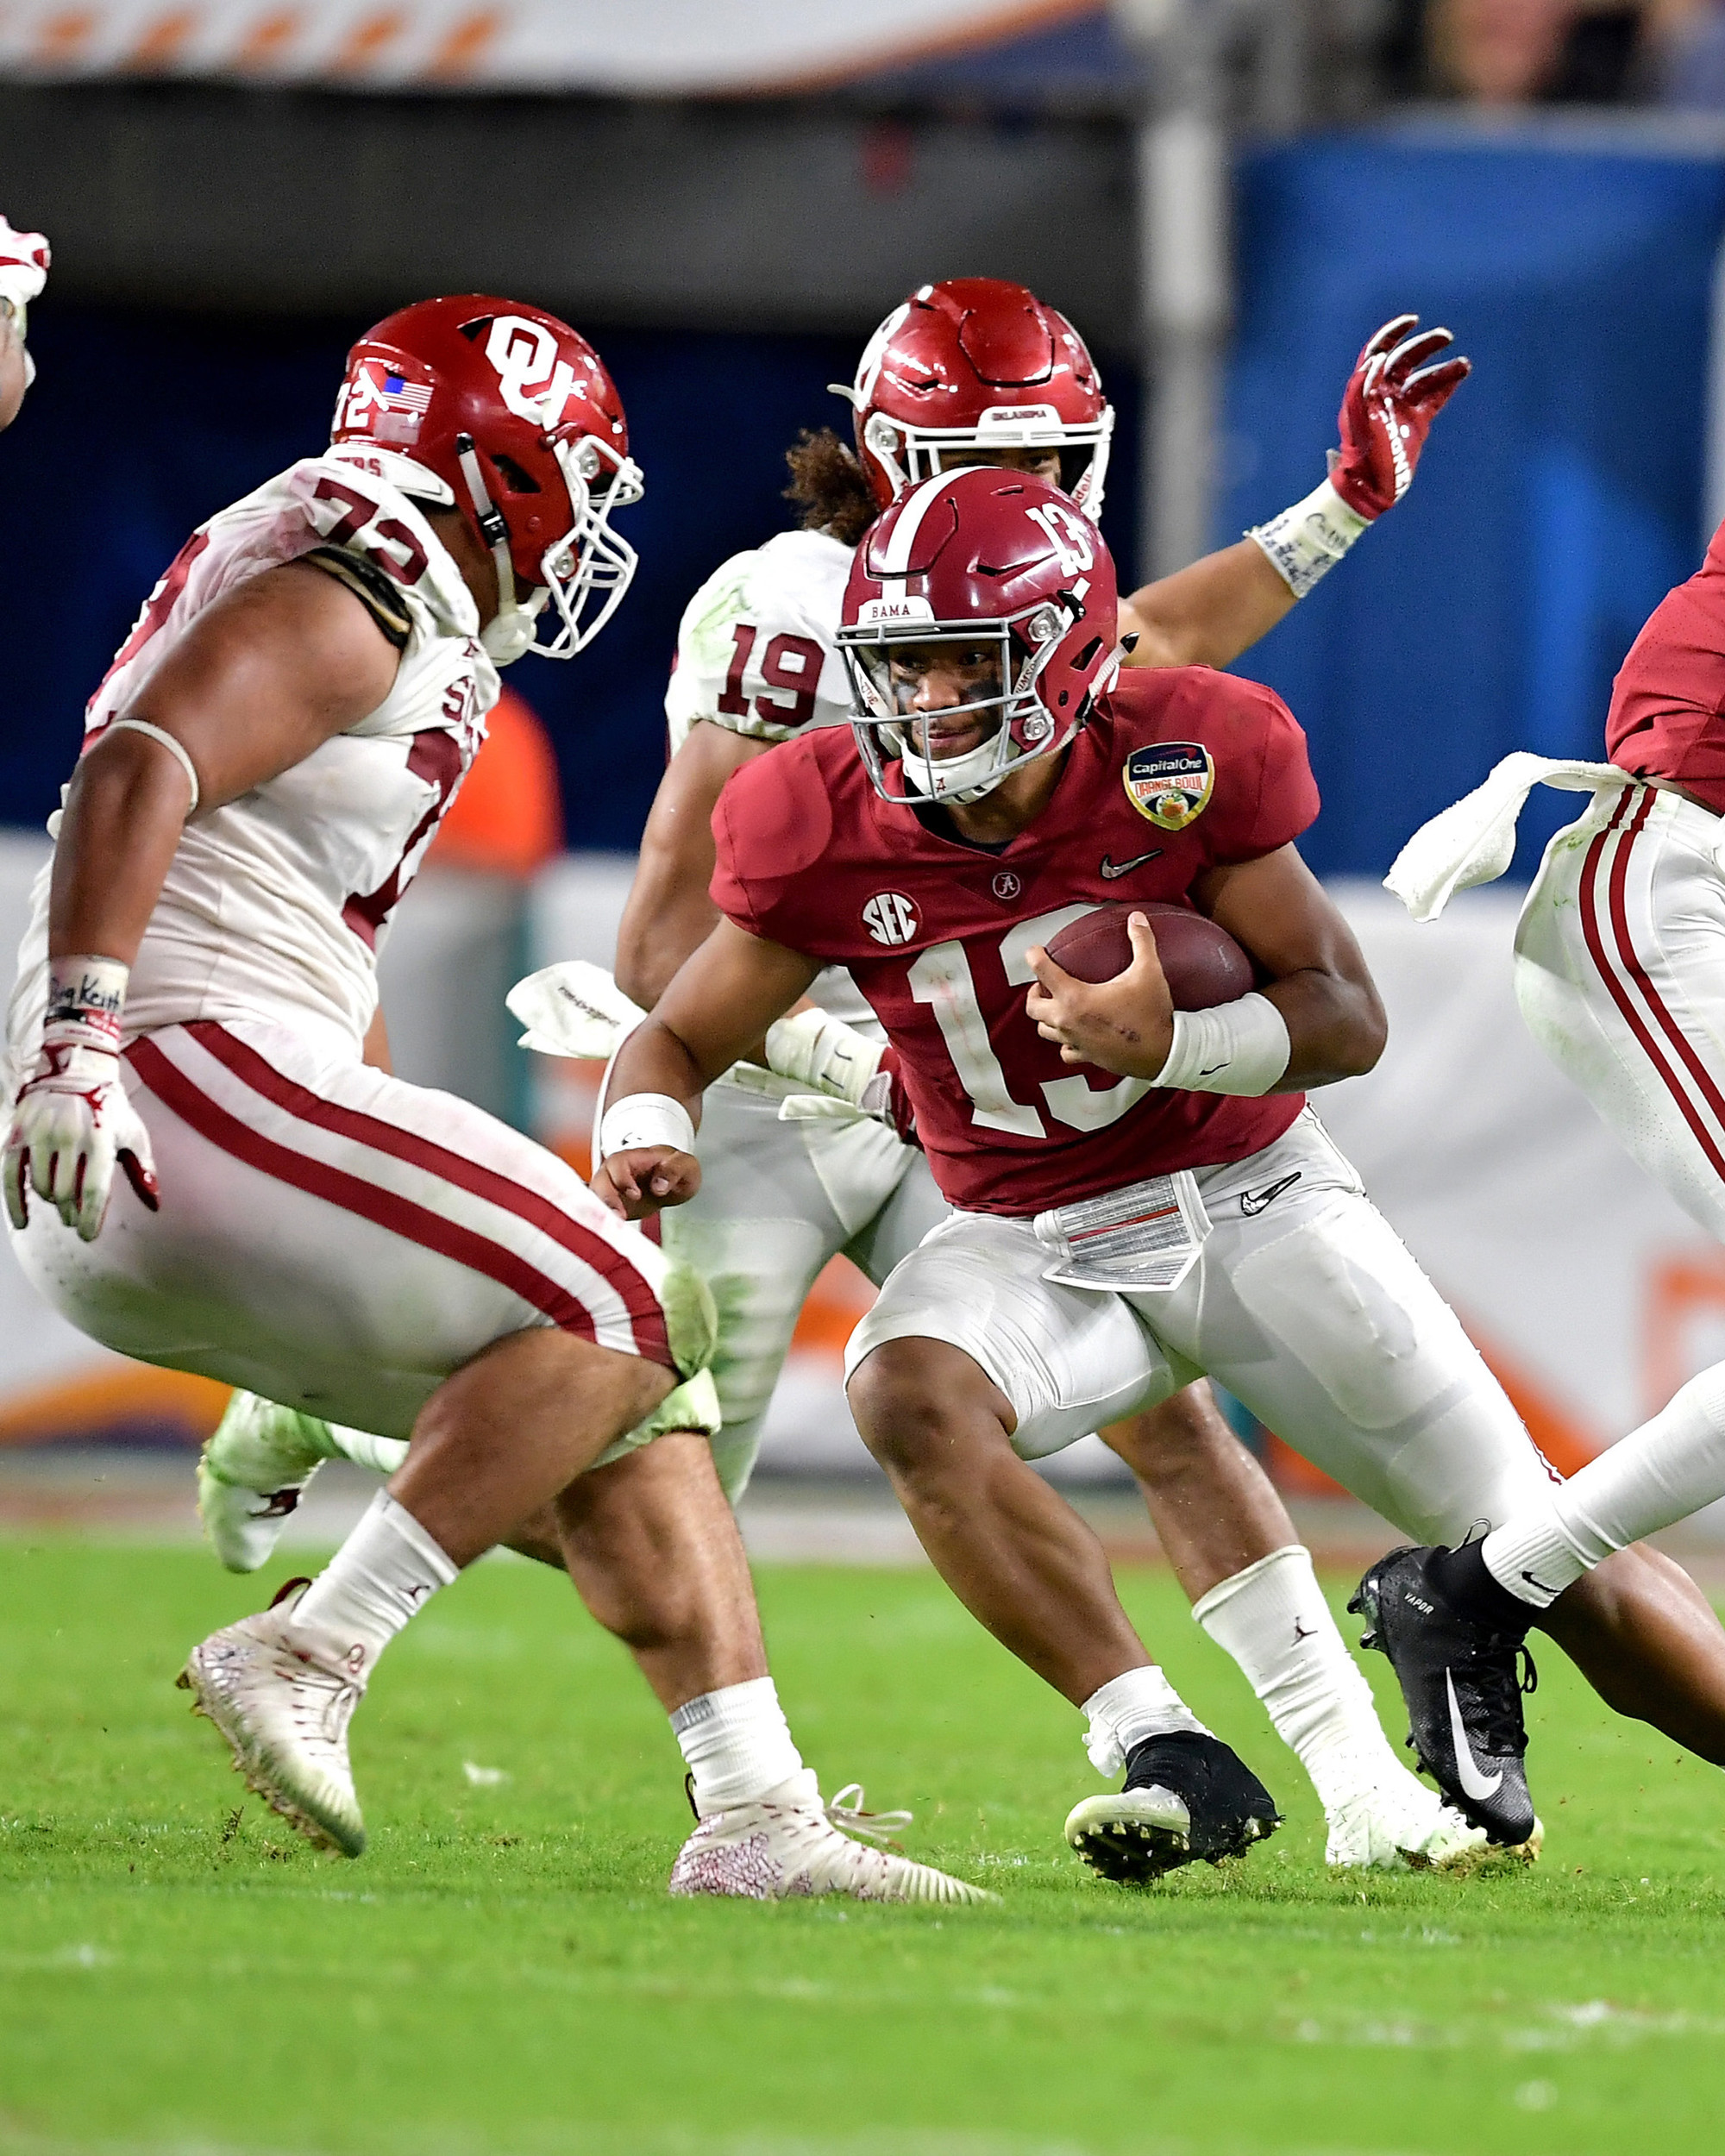 Alabama Crimson Tide quarterback Tua Tagovailoa (13) with a keeper during the second half of the Capital One Orange Bowl, featuring Alabama and the Oklahoma Sooners, at Hard Rock Stadium in Miami Gardens, Fla., Saturday, Dec. 29, 2018. Alabama wins 45-34. (Photo by Lee Walls)